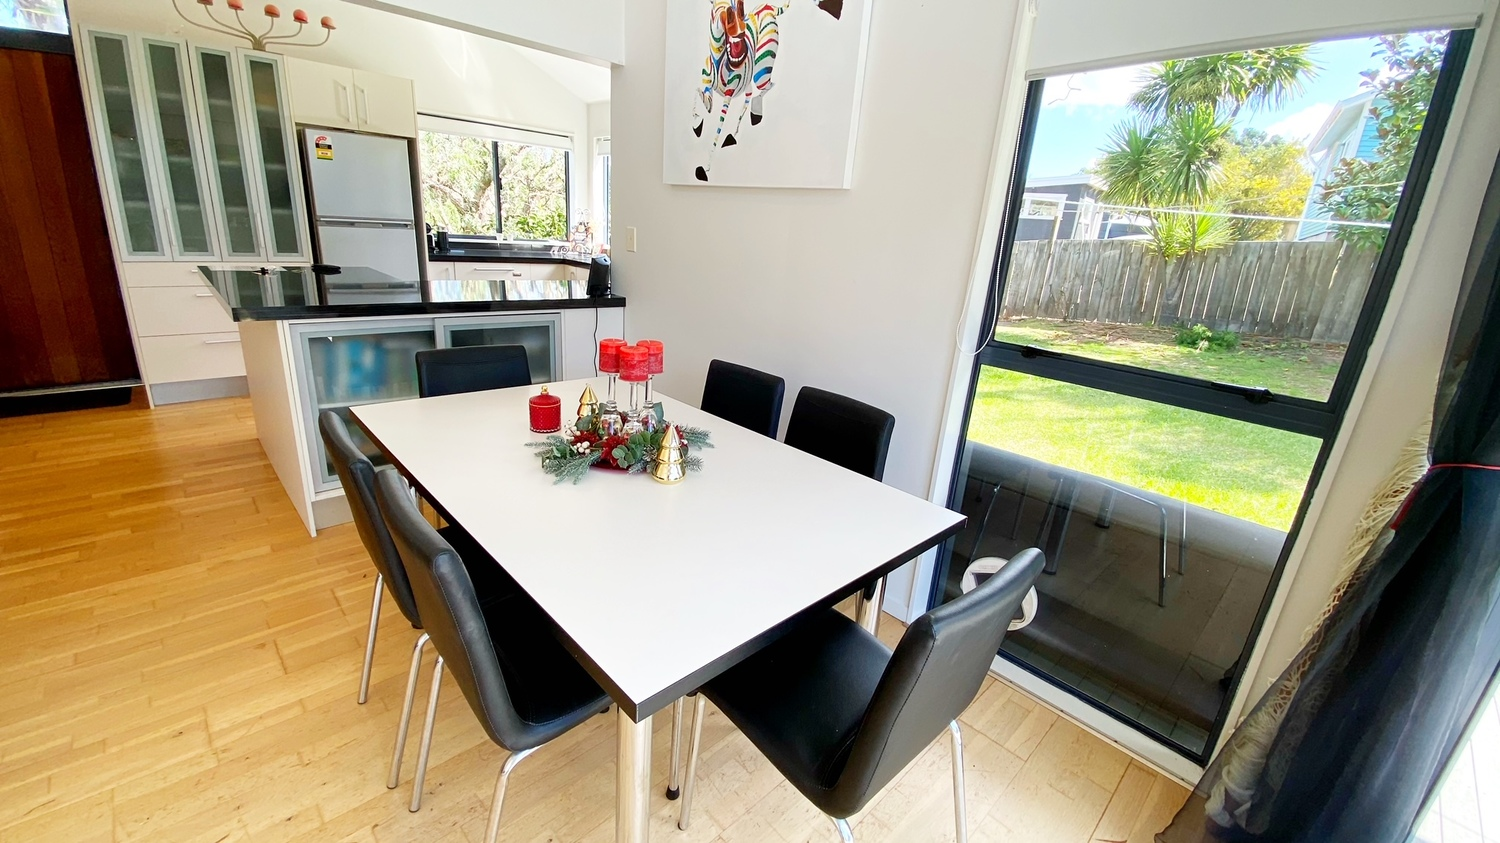 2._Woodlands_dining_table_chairs_through_to_kitchen.msg_1500x843.jpg